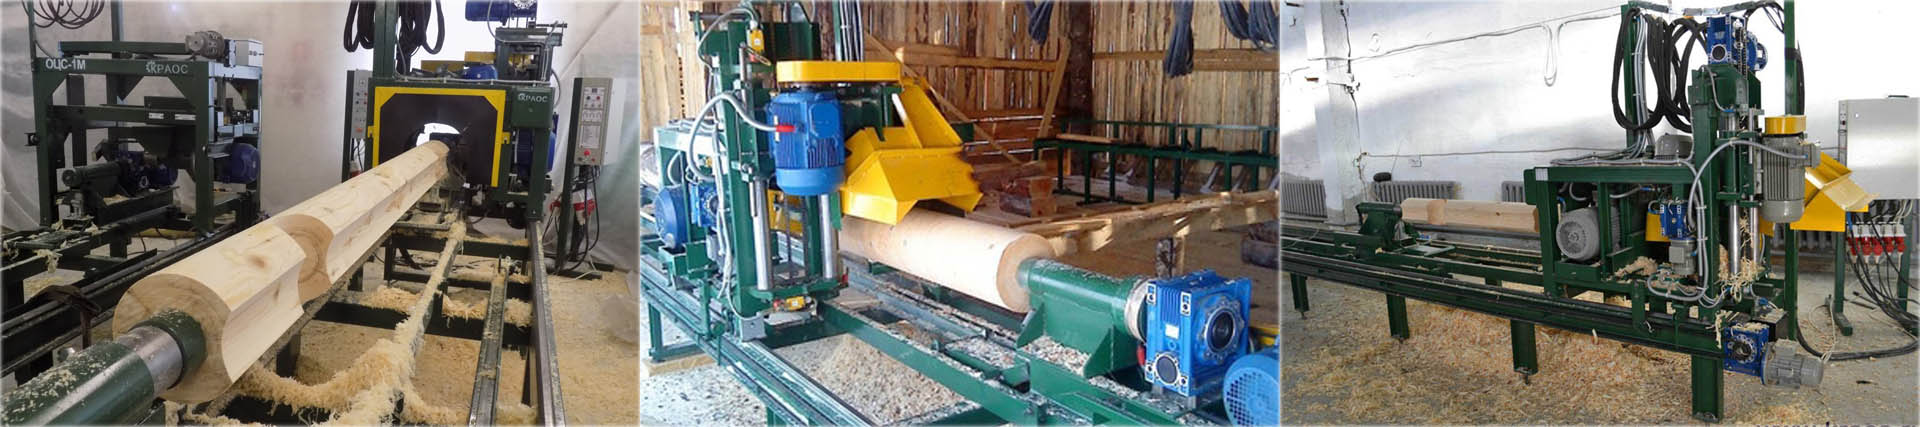 Production and sale of woodworking equipment